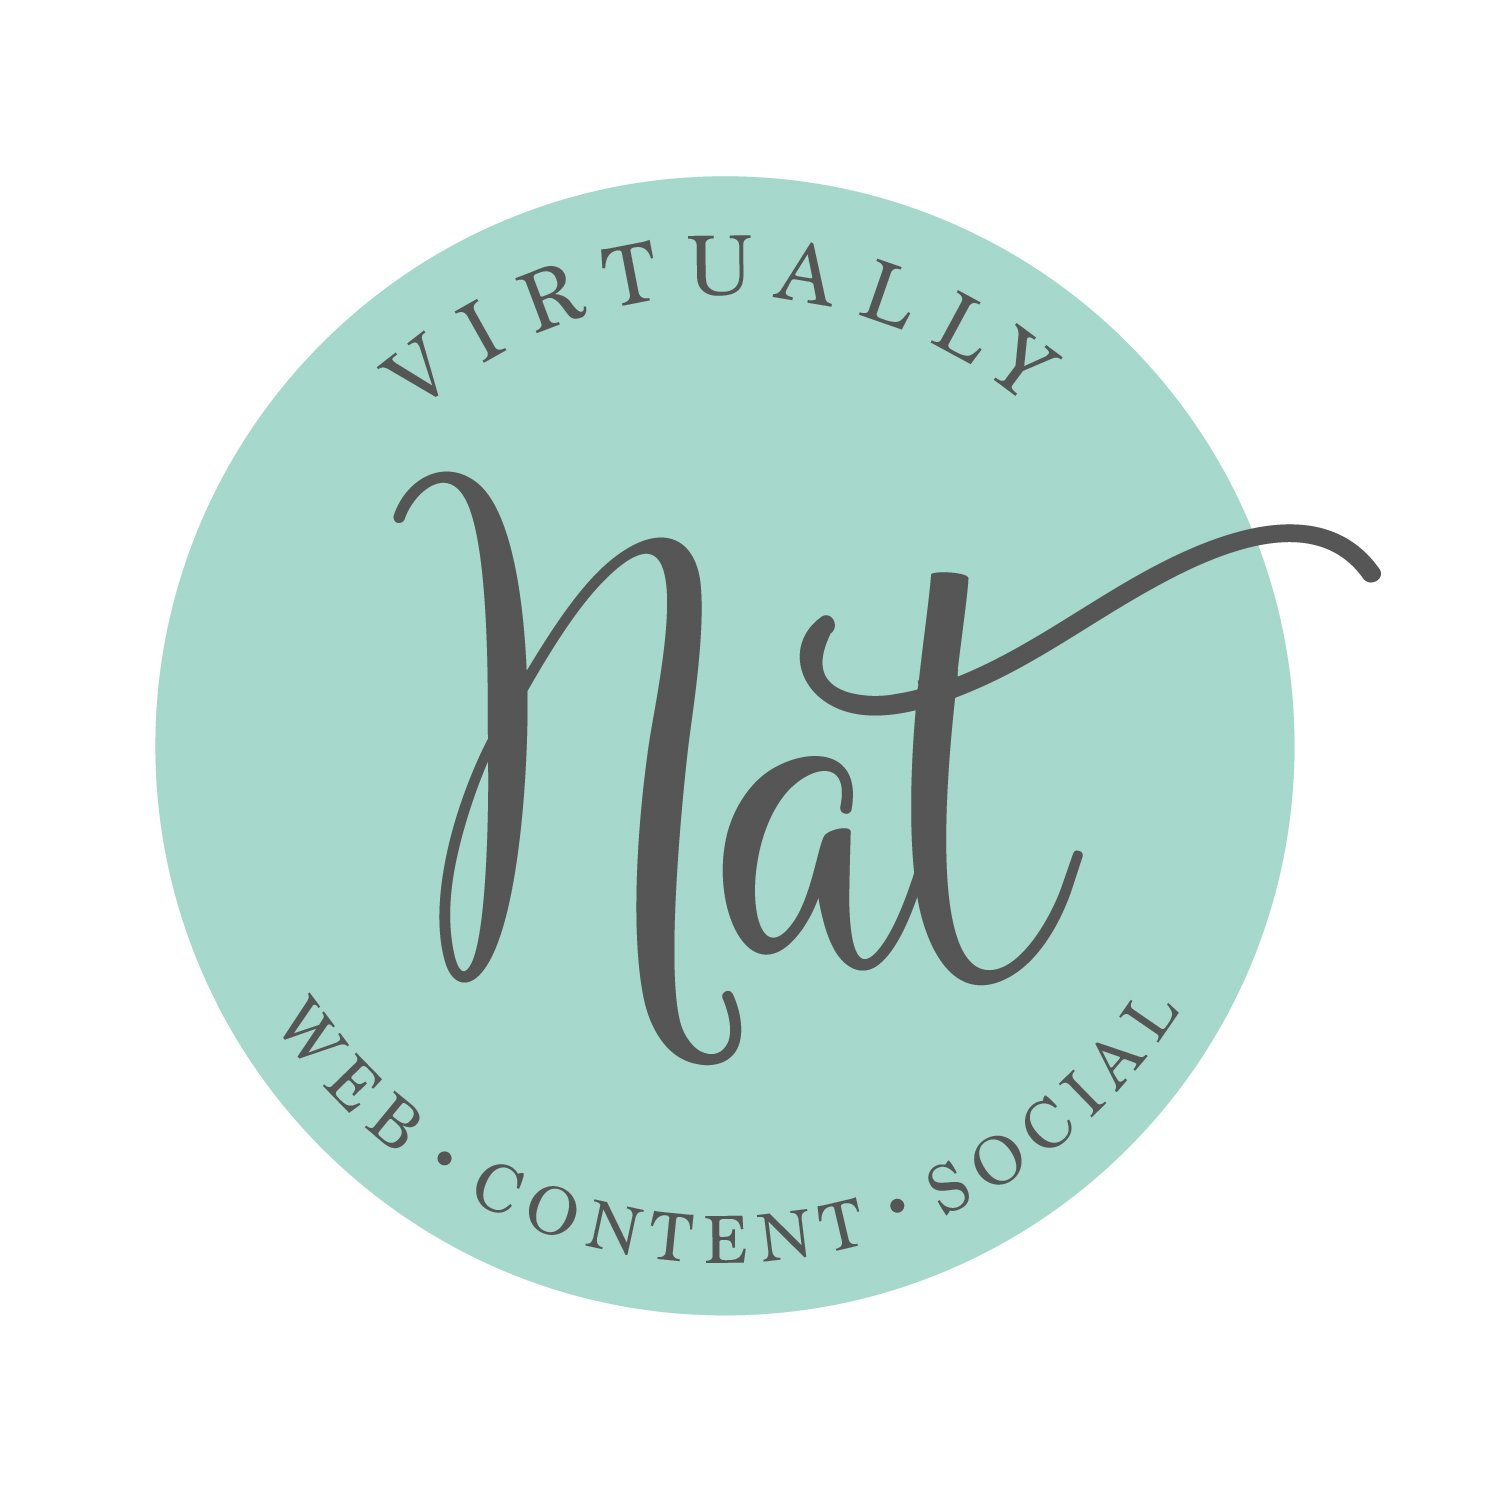 Virtually Nat